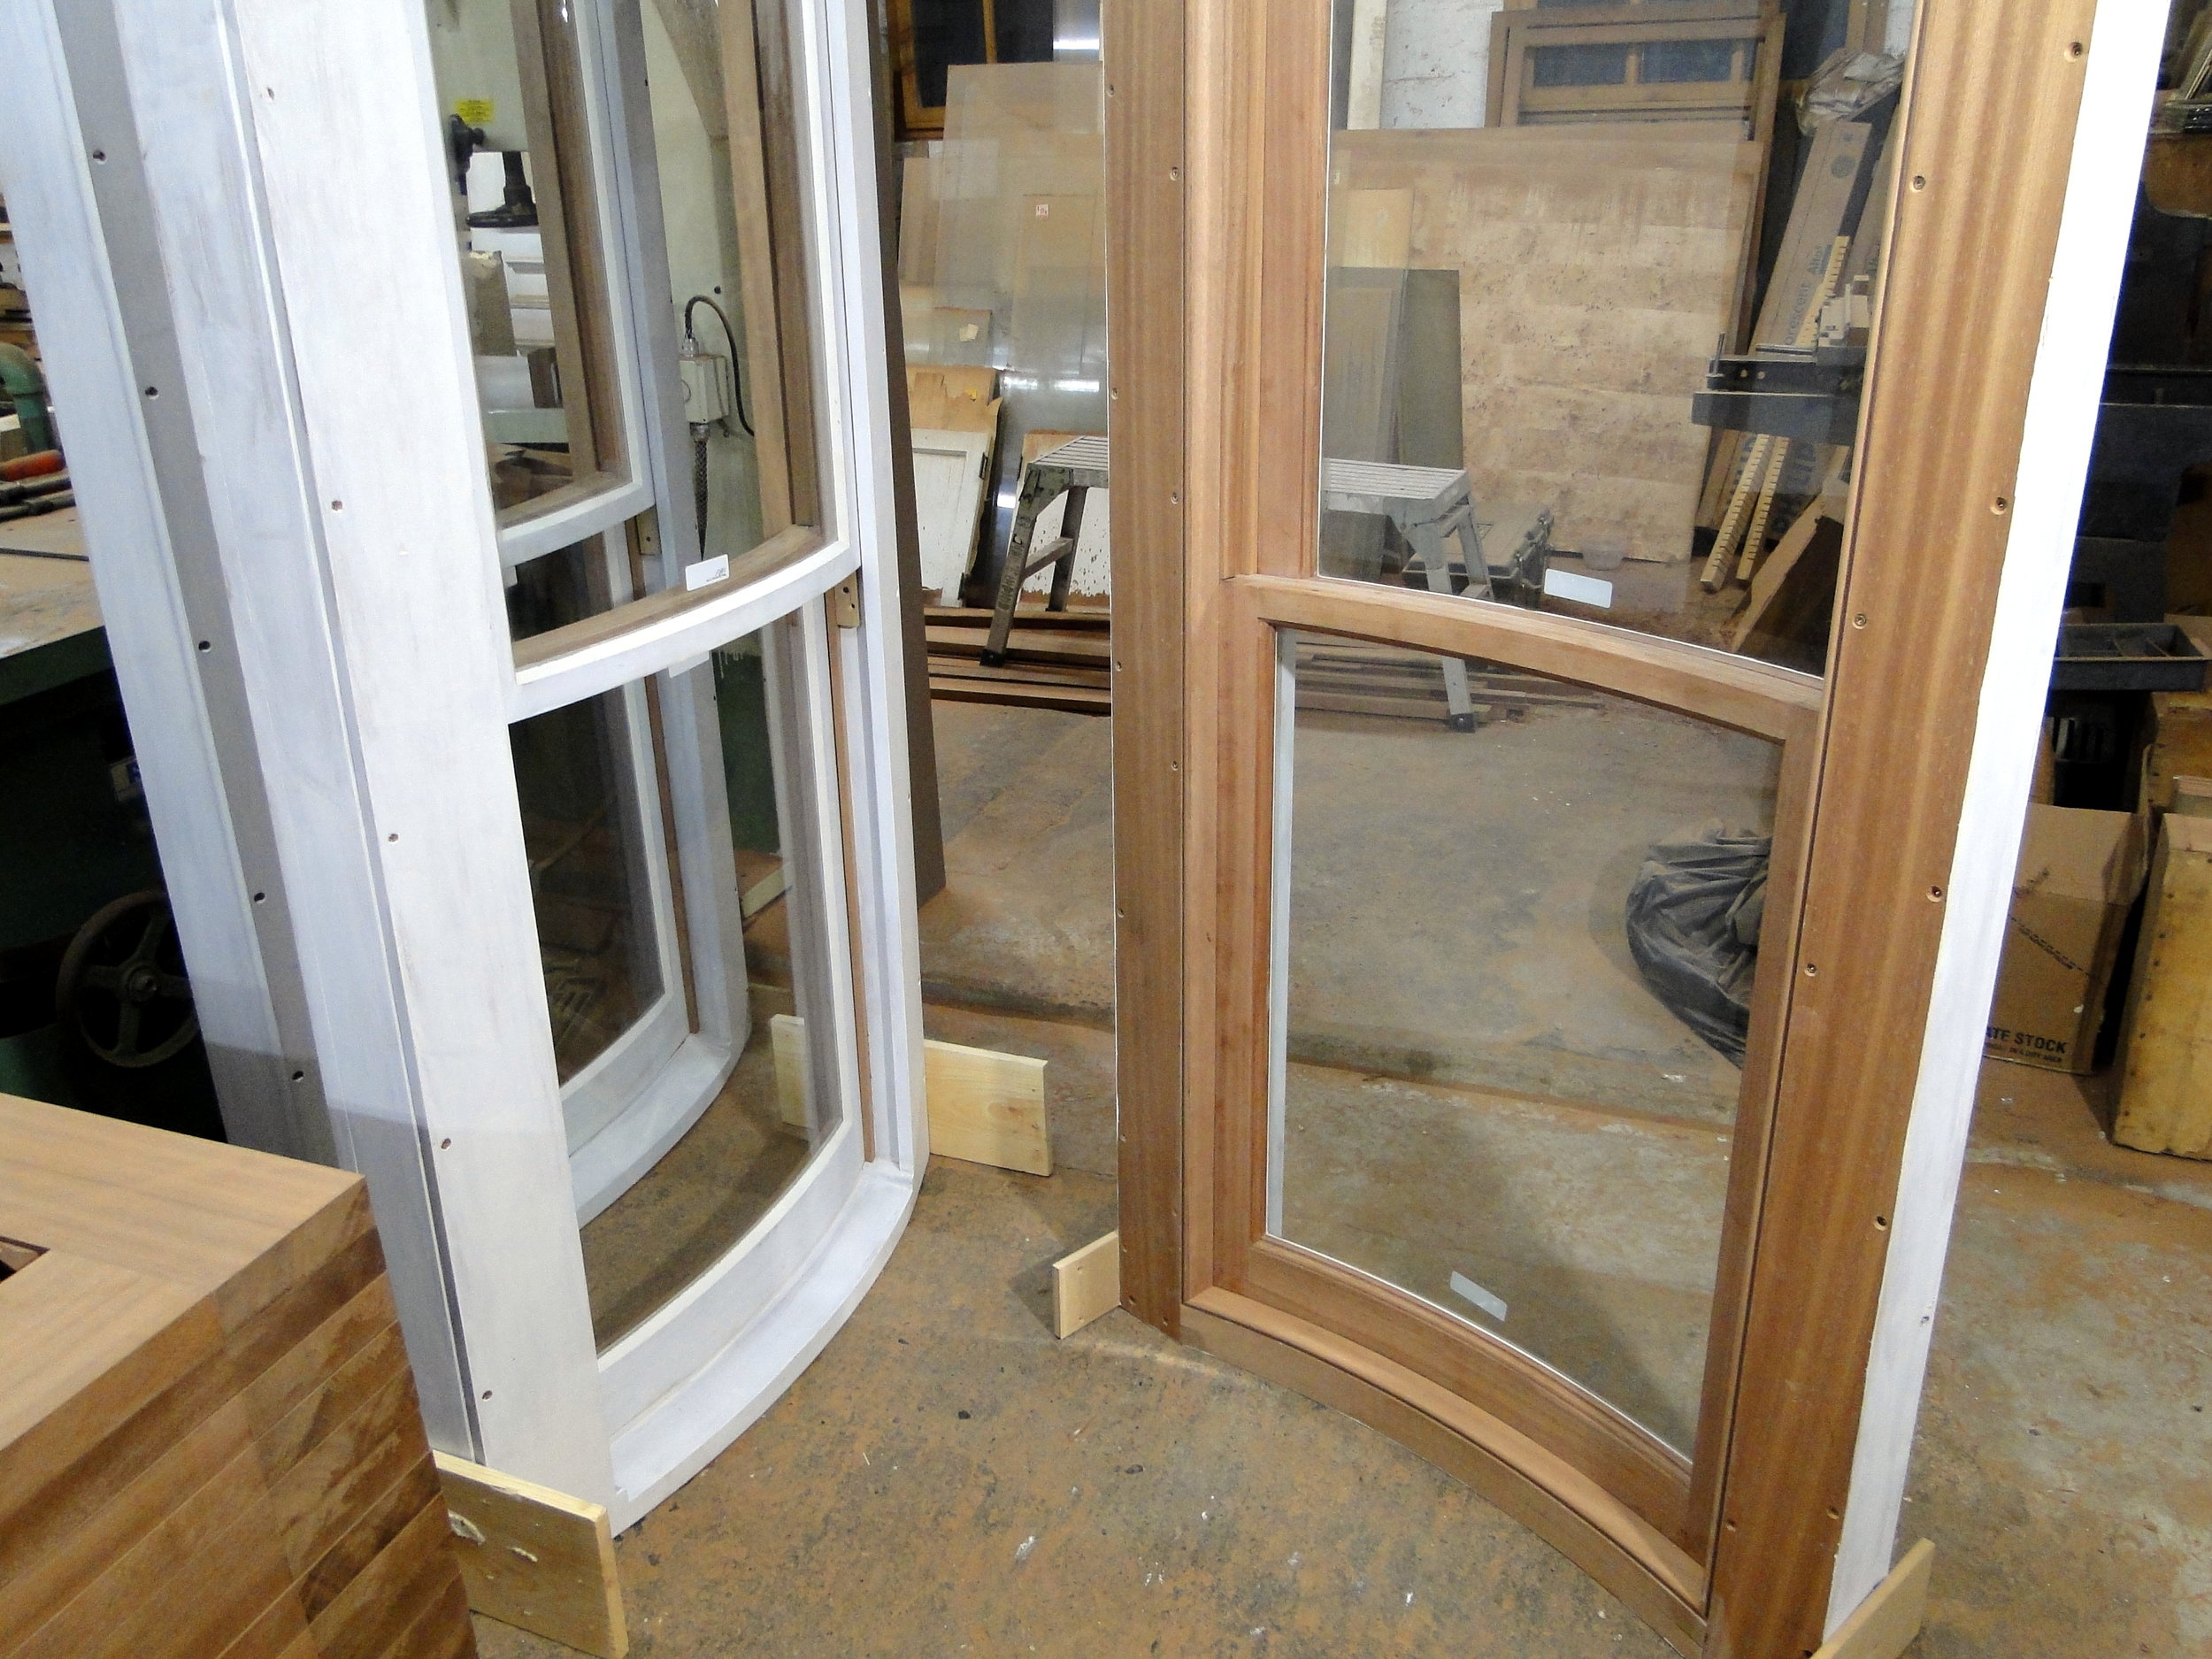 Our traditional double hung bow window in primed mahogany - available in several species of wood. Bronze or zinc interlocking metal weather stripping. Several options for glass including Restoration Glass. Also several options for lift systems including weight and pulley counterbalance with rope or chain. Wood storms and screens.